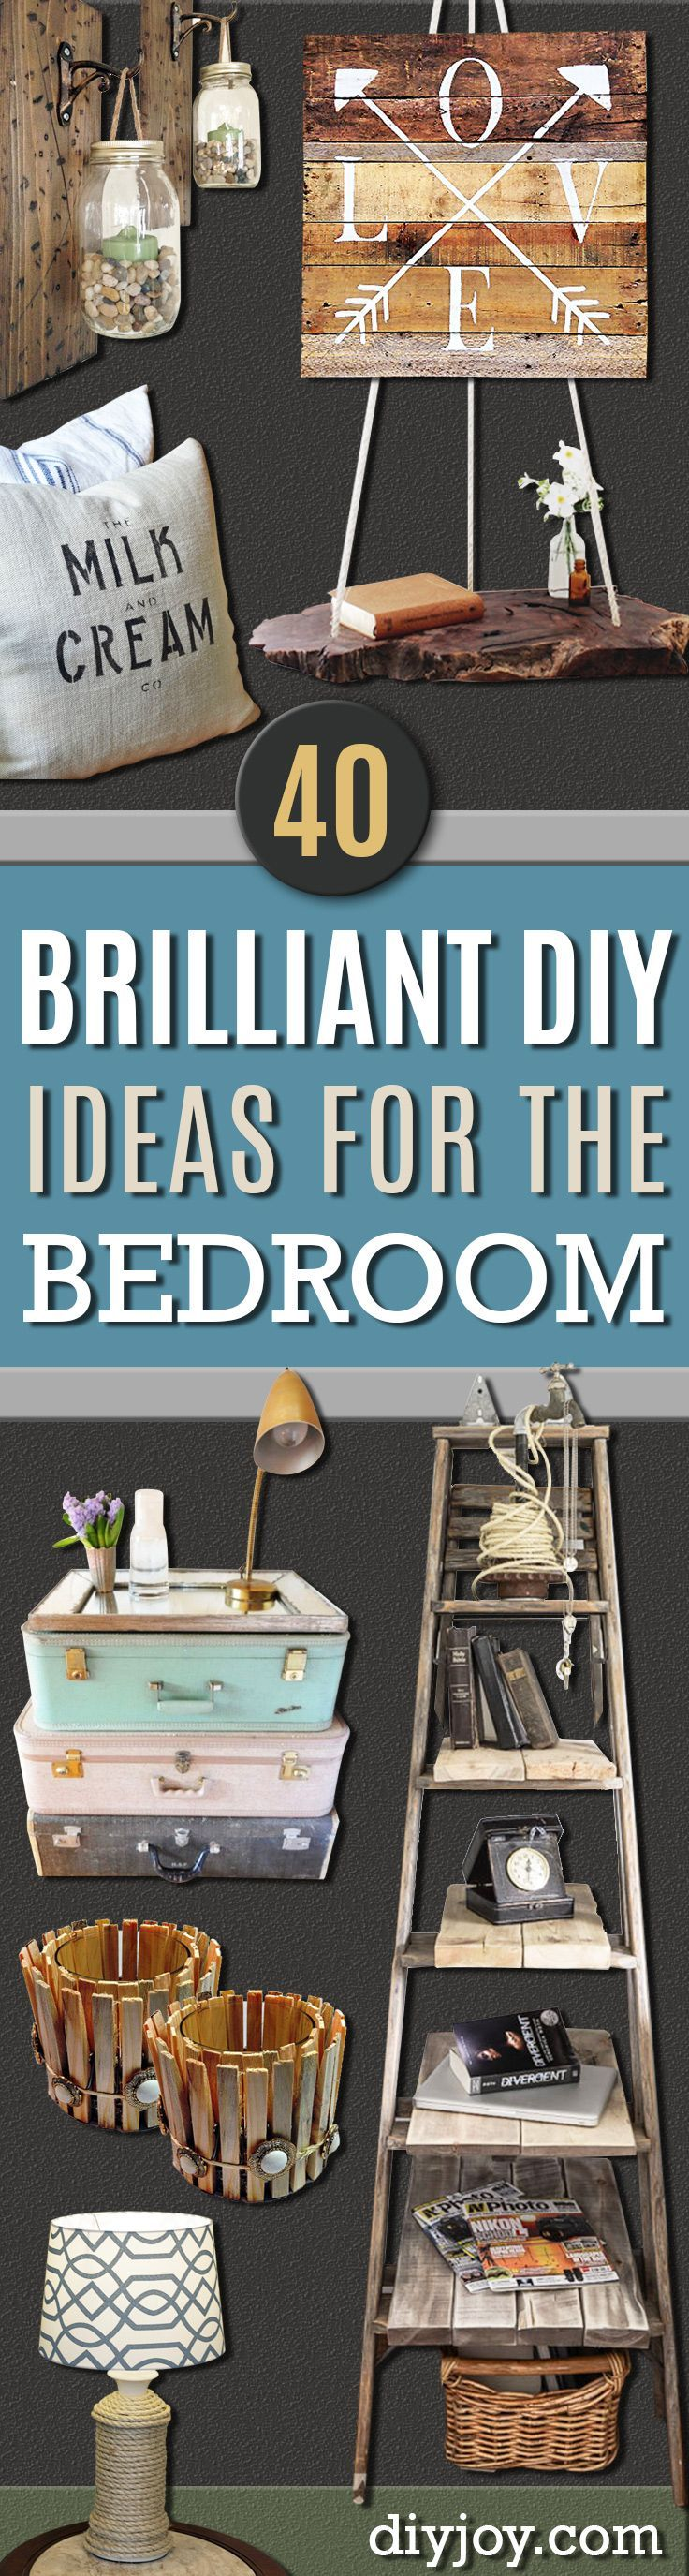 DIY Decor Ideas for The Bedroom - Rustic and Vintage Decorating Projects for Bedroom Furniture, Bedding, Wall Art, Farmhouse Style Headboards, Rugs, Tables and Accessories. Tutorials and Step By Step Instructions http:diyjoy.com/diy-decor-bedroom-ideas